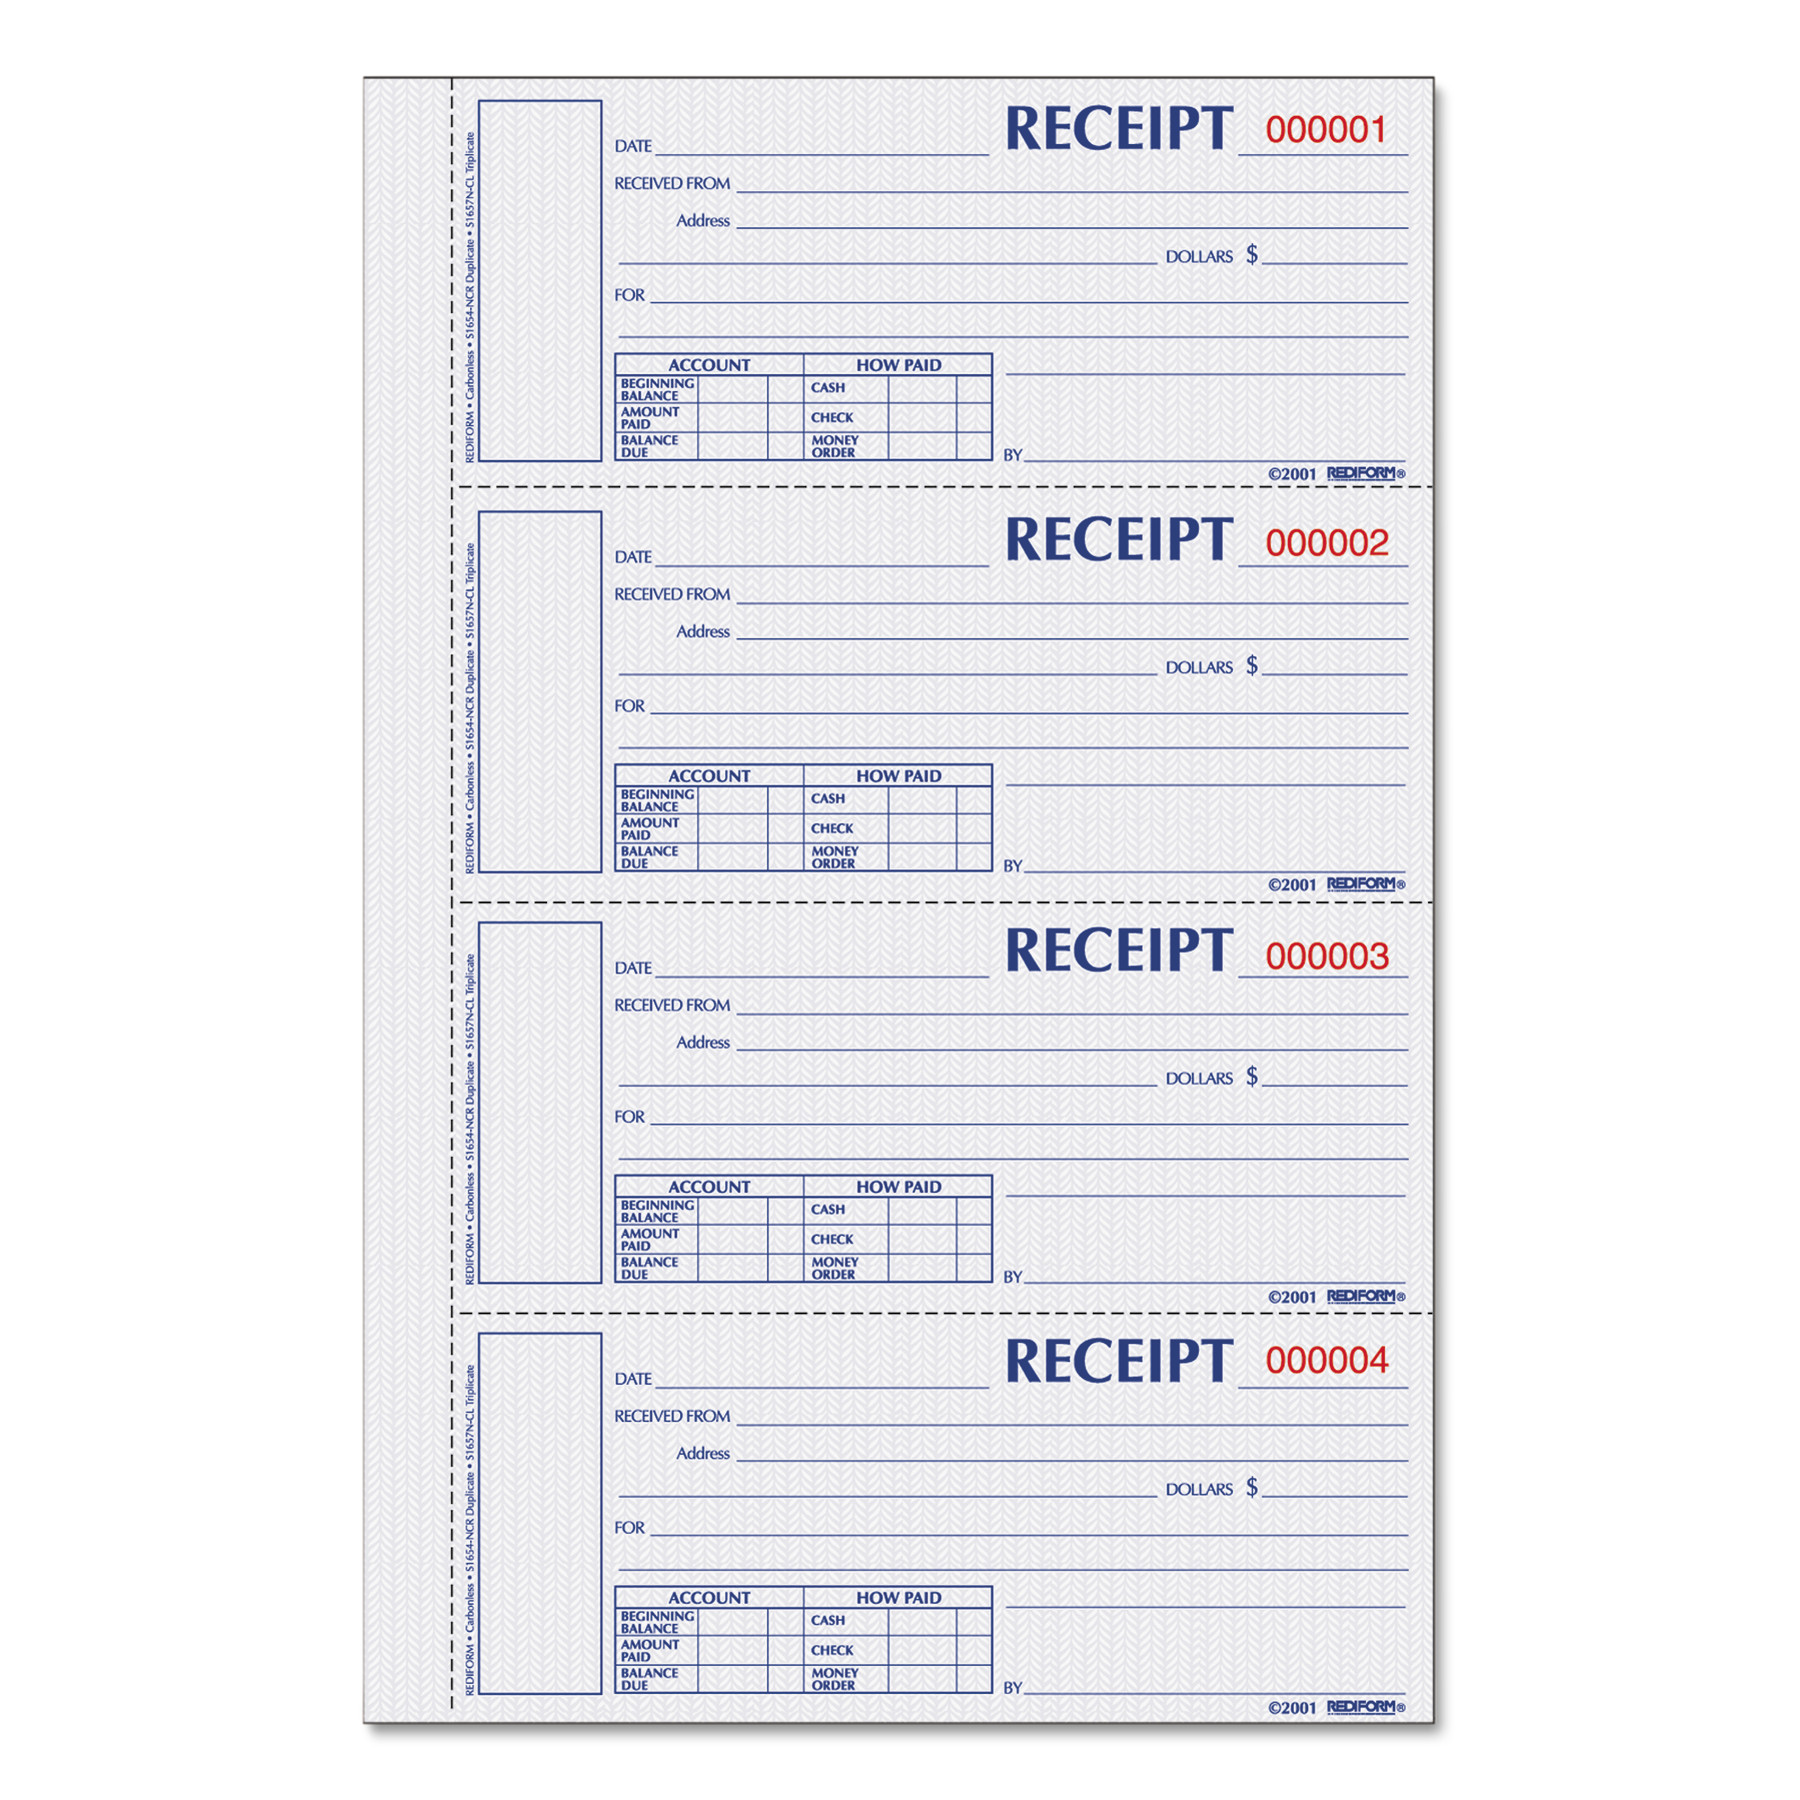 Free Invoice Program Pdf Receipt Books Canada Invoice Template Pdf with Invoice Of Payment Rediform Hardcover Numbered Money Receipt Book   X   Invoice Terms Net Pdf